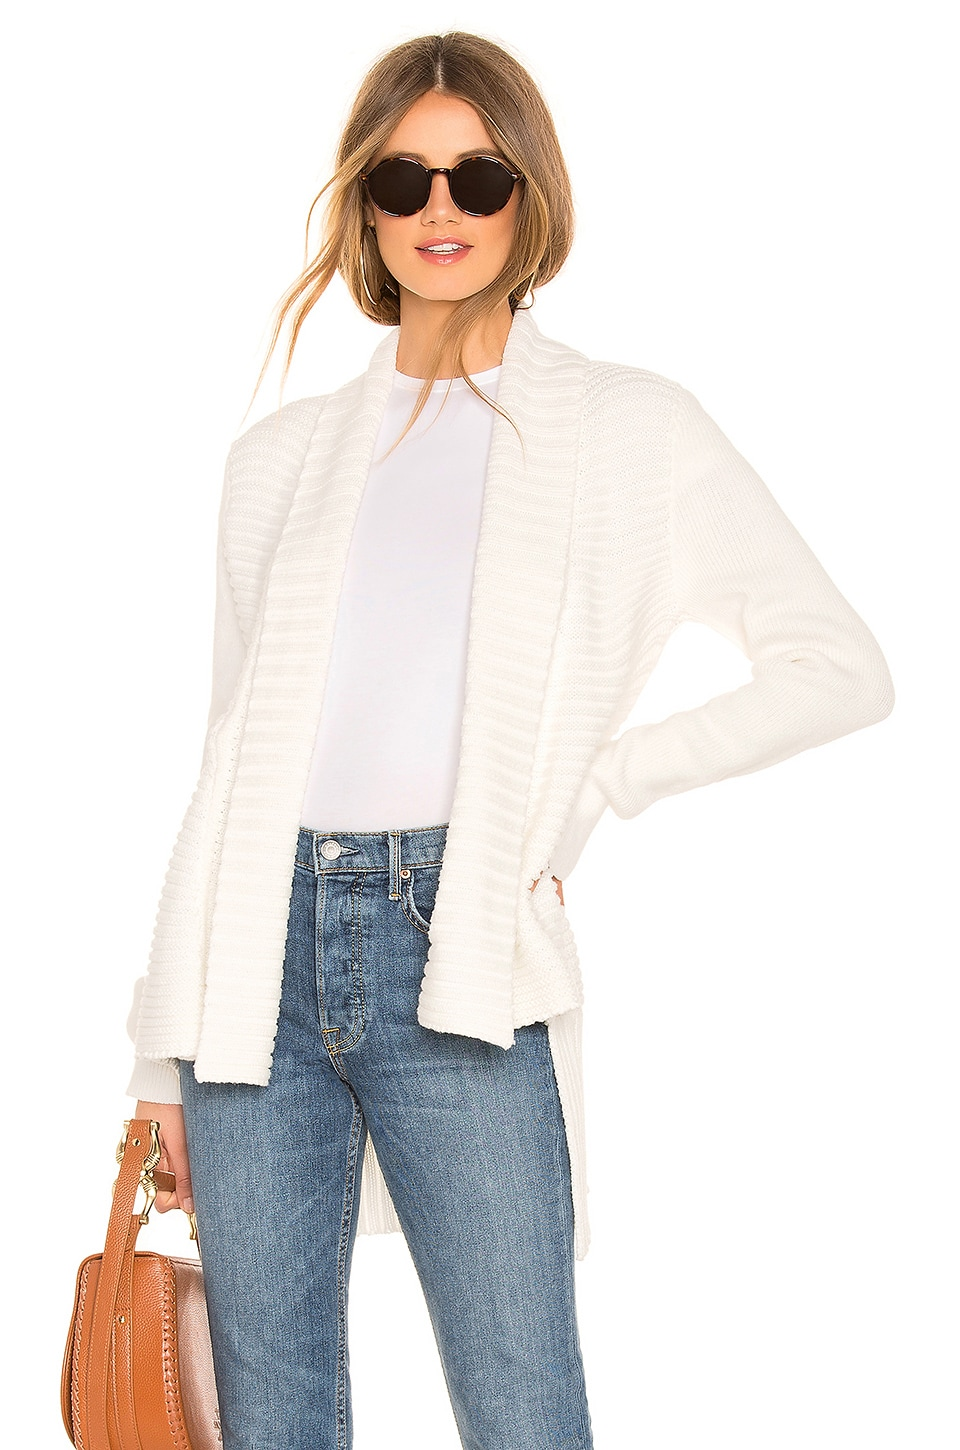 525 america Open Front Cardigan in Whitecap